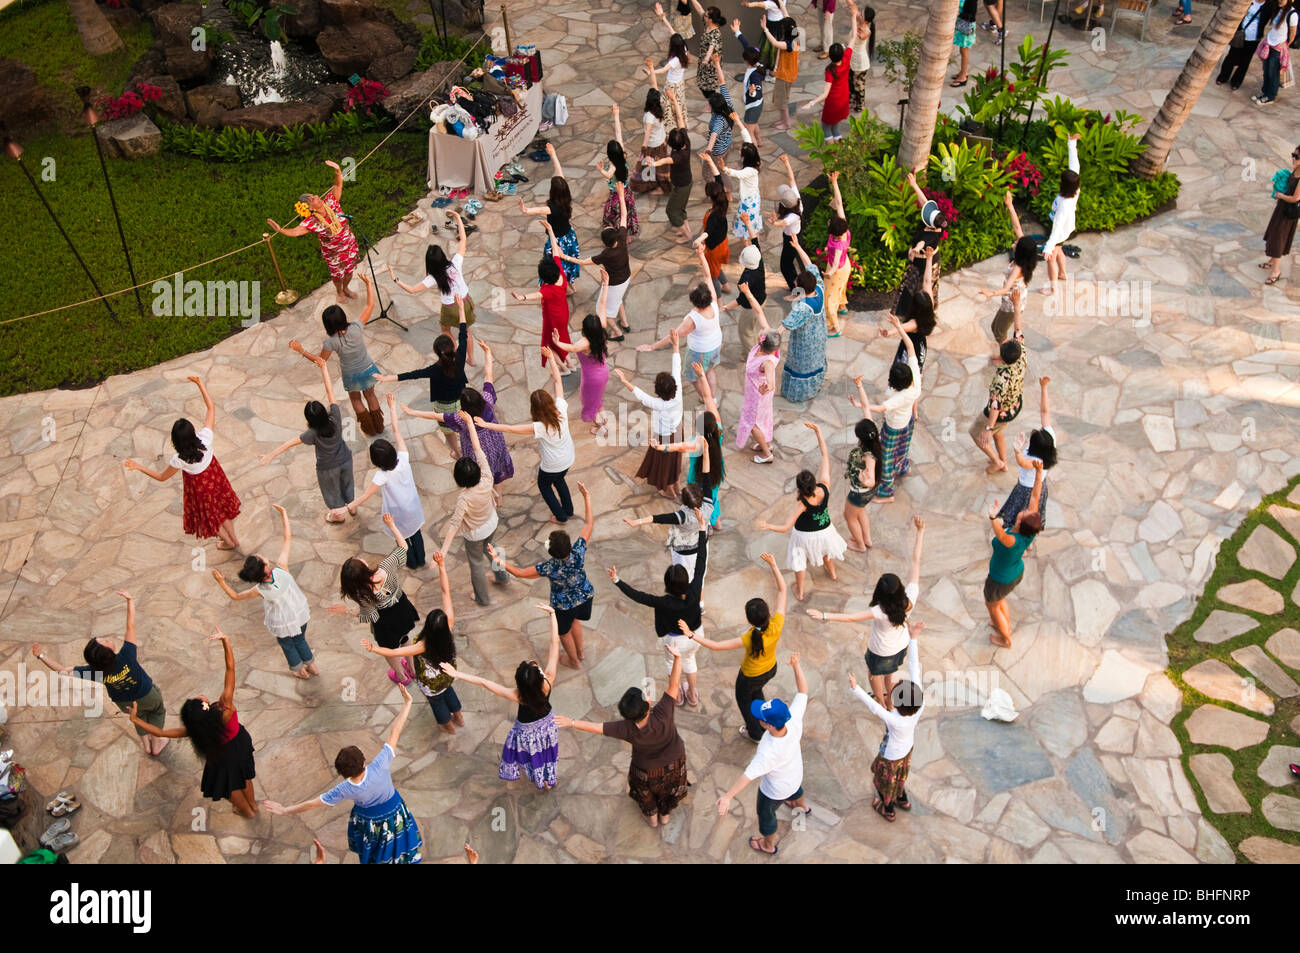 Hula dancing class, Waikiki, Honolulu, Oahu, Hawaii - Stock Image